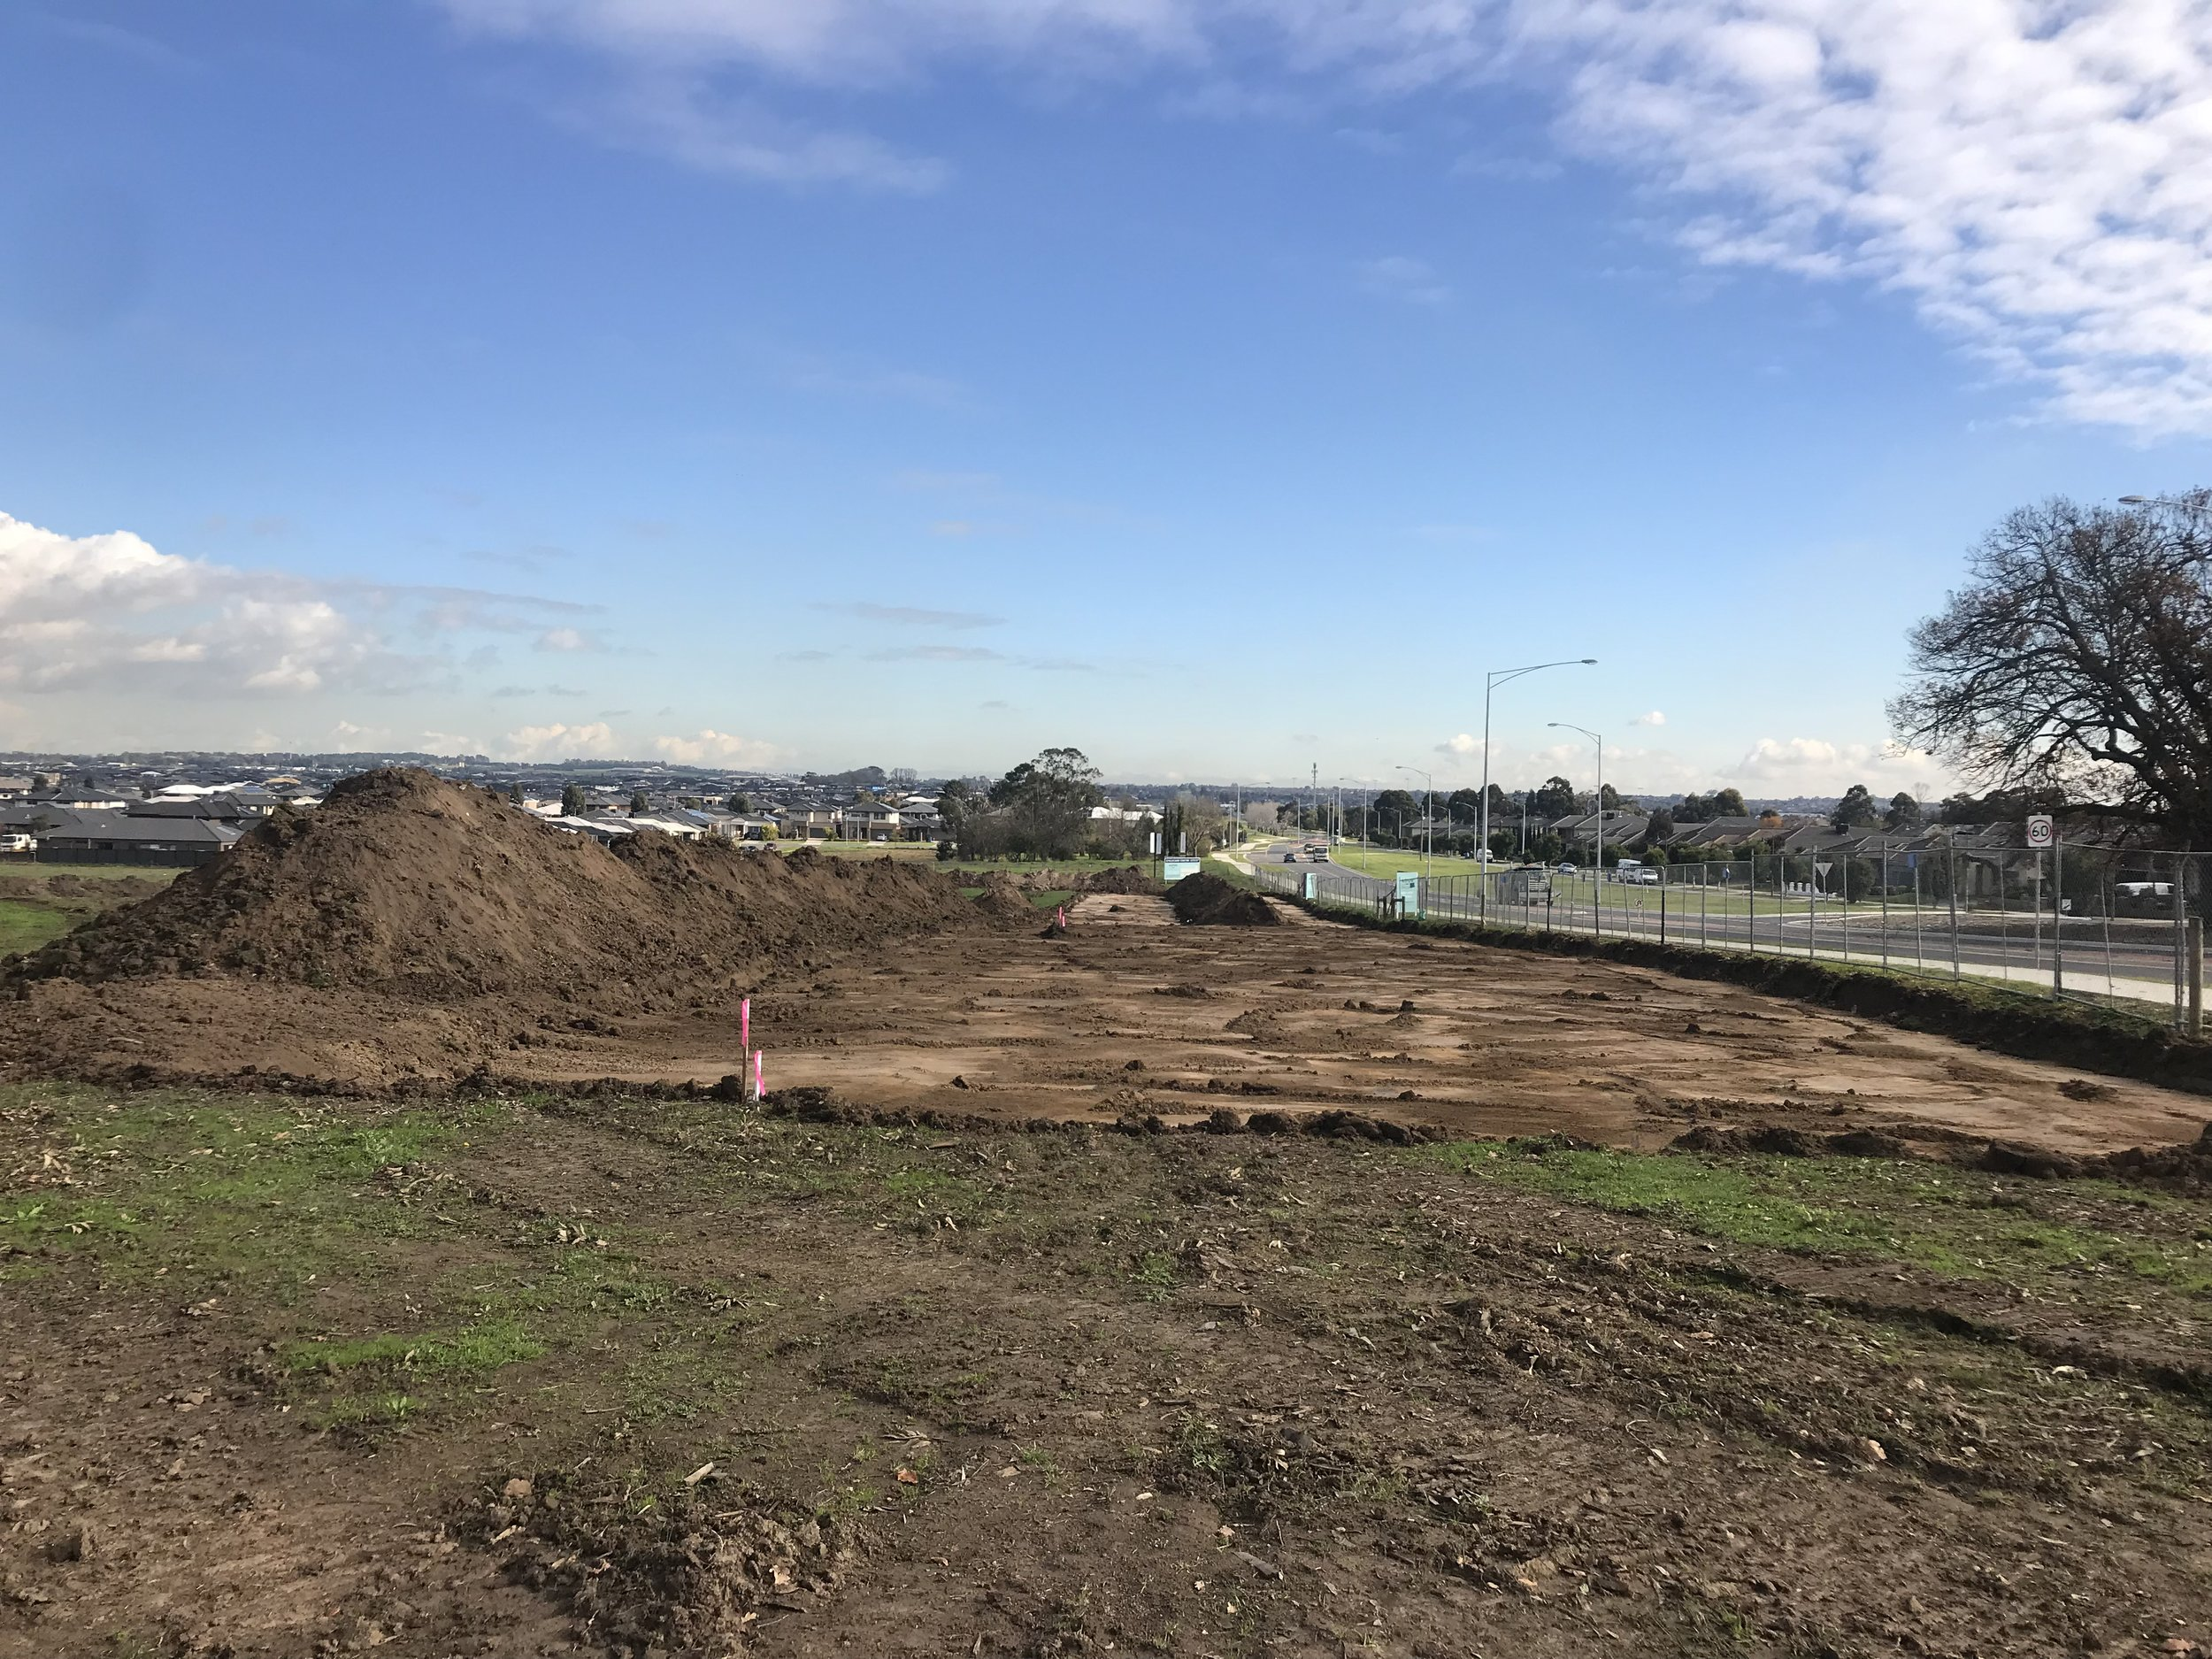 Construction update - 04/06/2018Construction has officially started on the Aspen on Clyde estate. Roads being cut and blocks being pegged, a lot of movement happening.